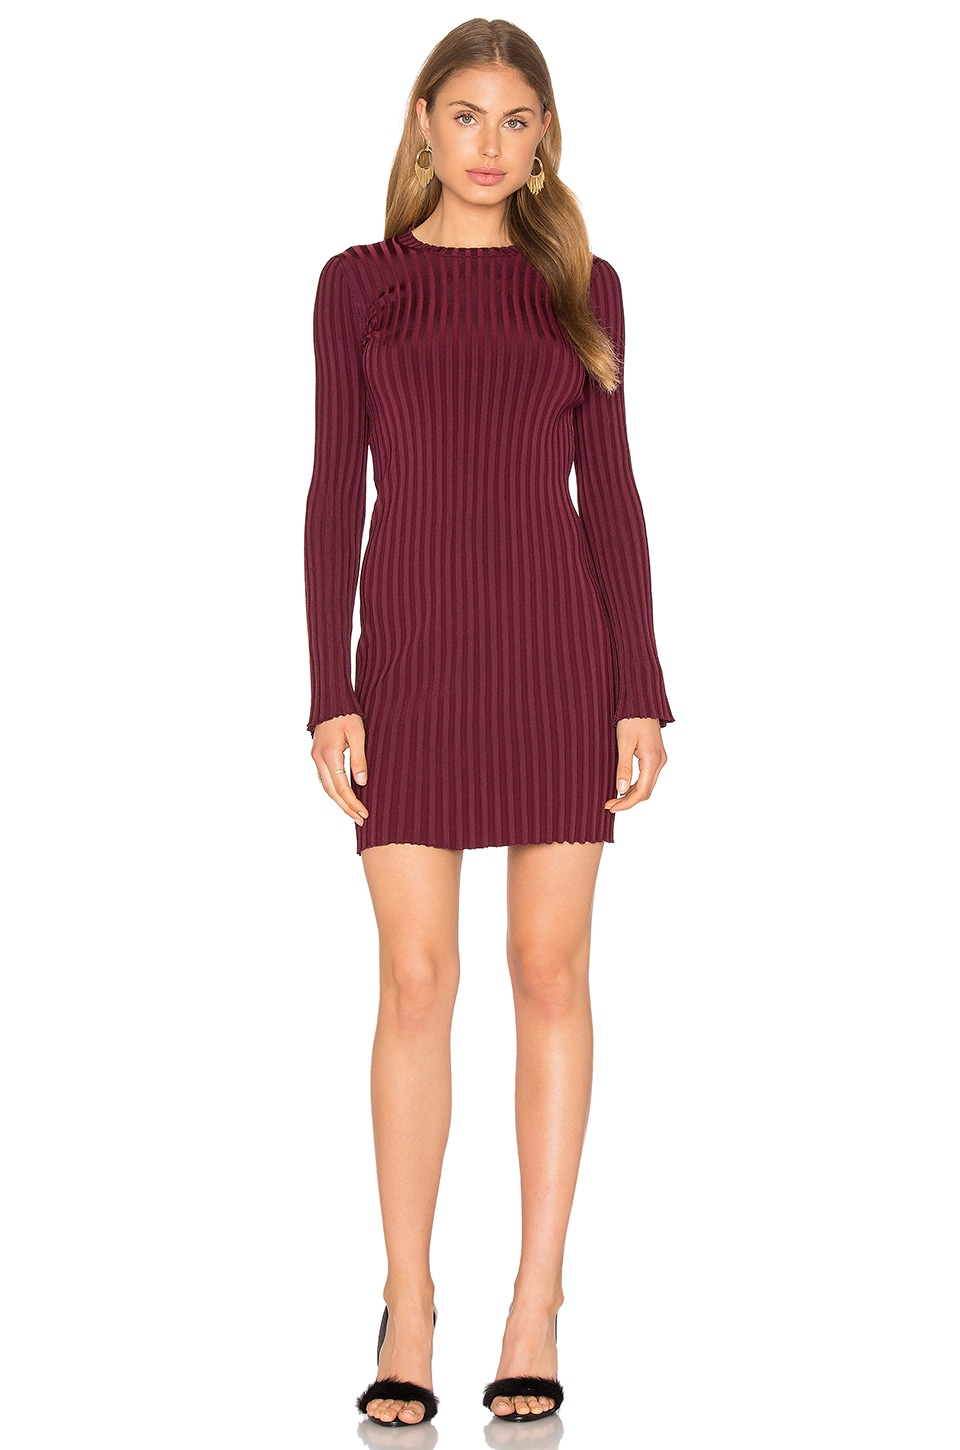 Elizabeth and James Penny Dress in Bordeaux